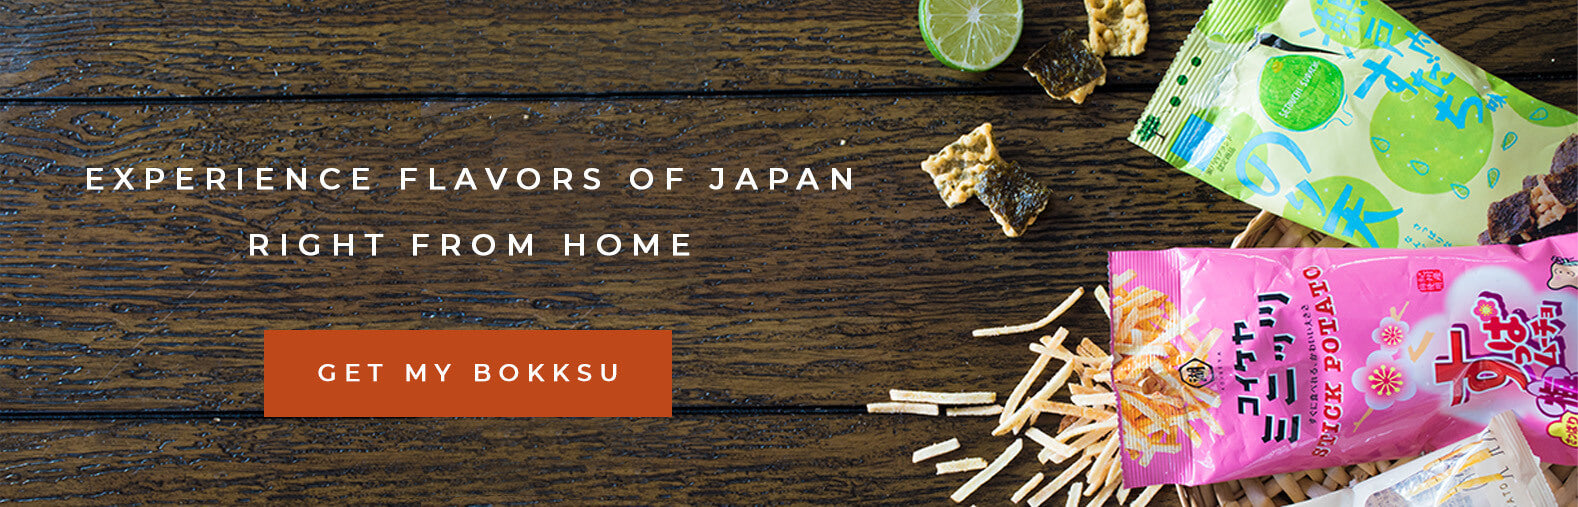 Experience flavors of Japan right from home